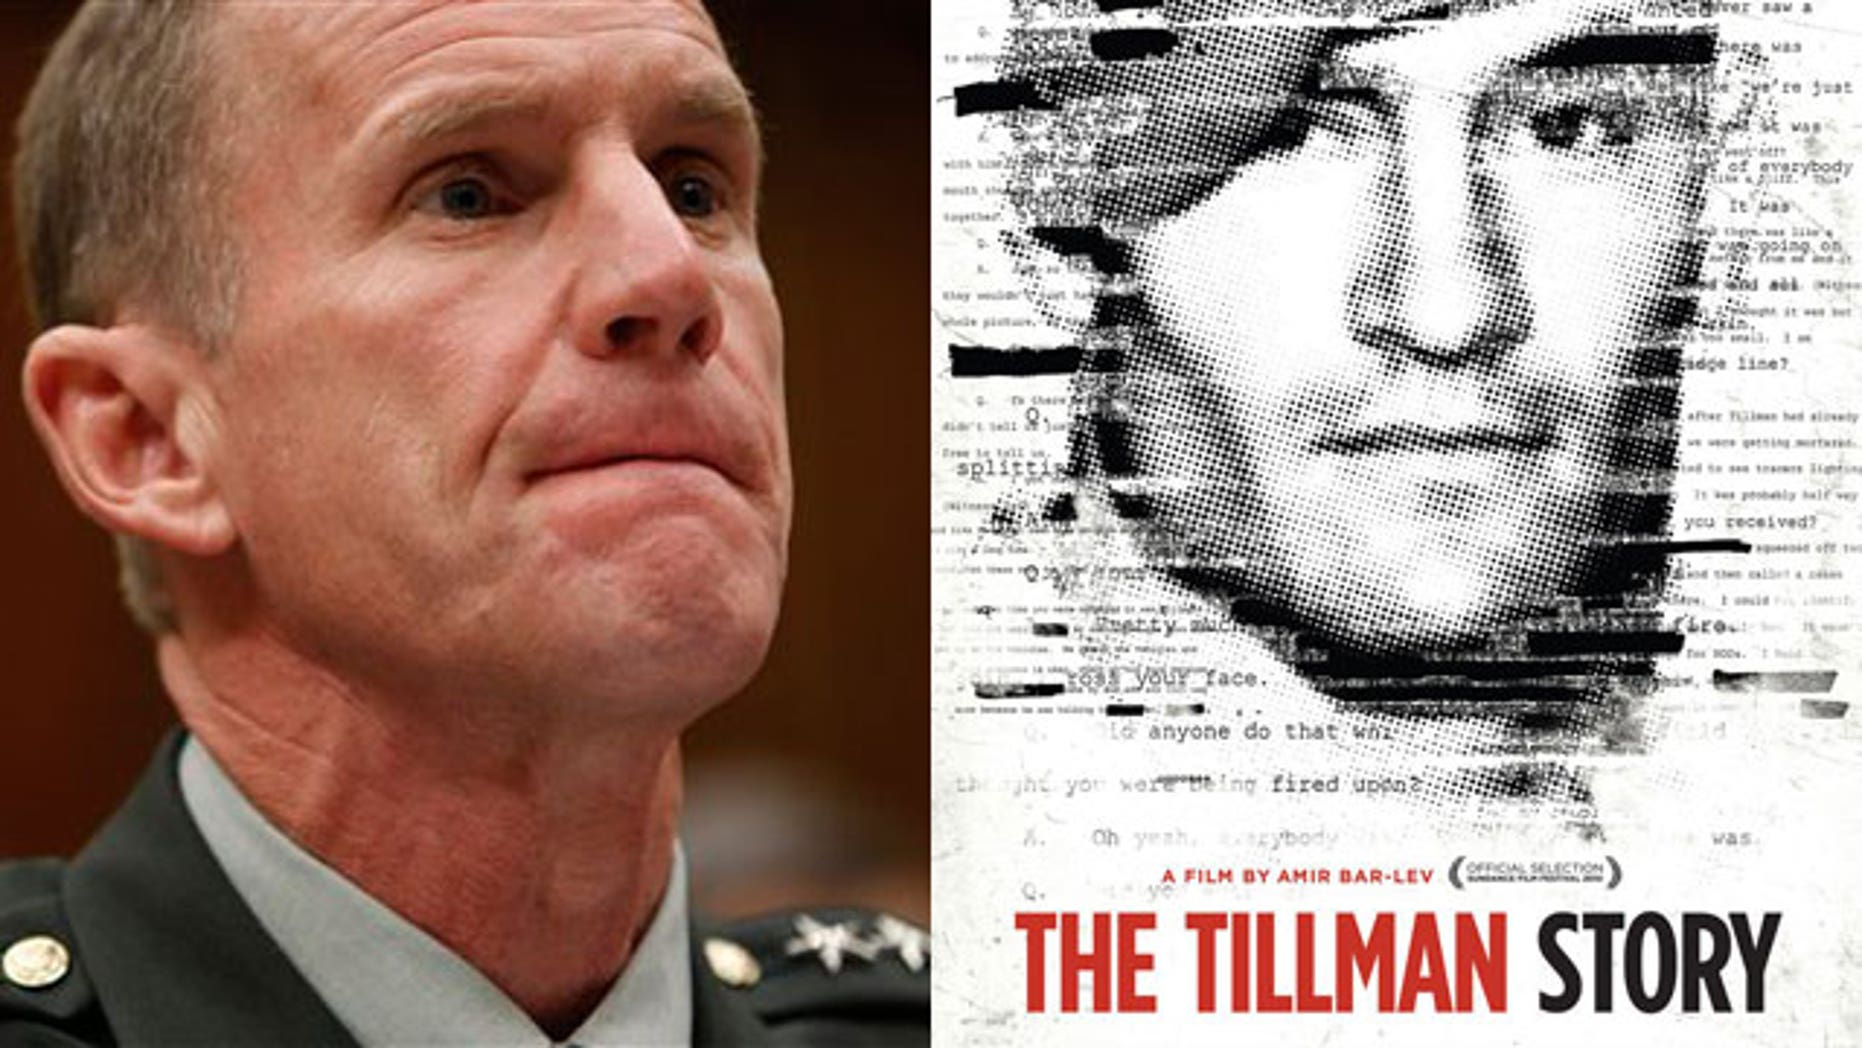 Gen. Stanley McChrystal (left) and a promotional poster for the film 'The Tillman Story'